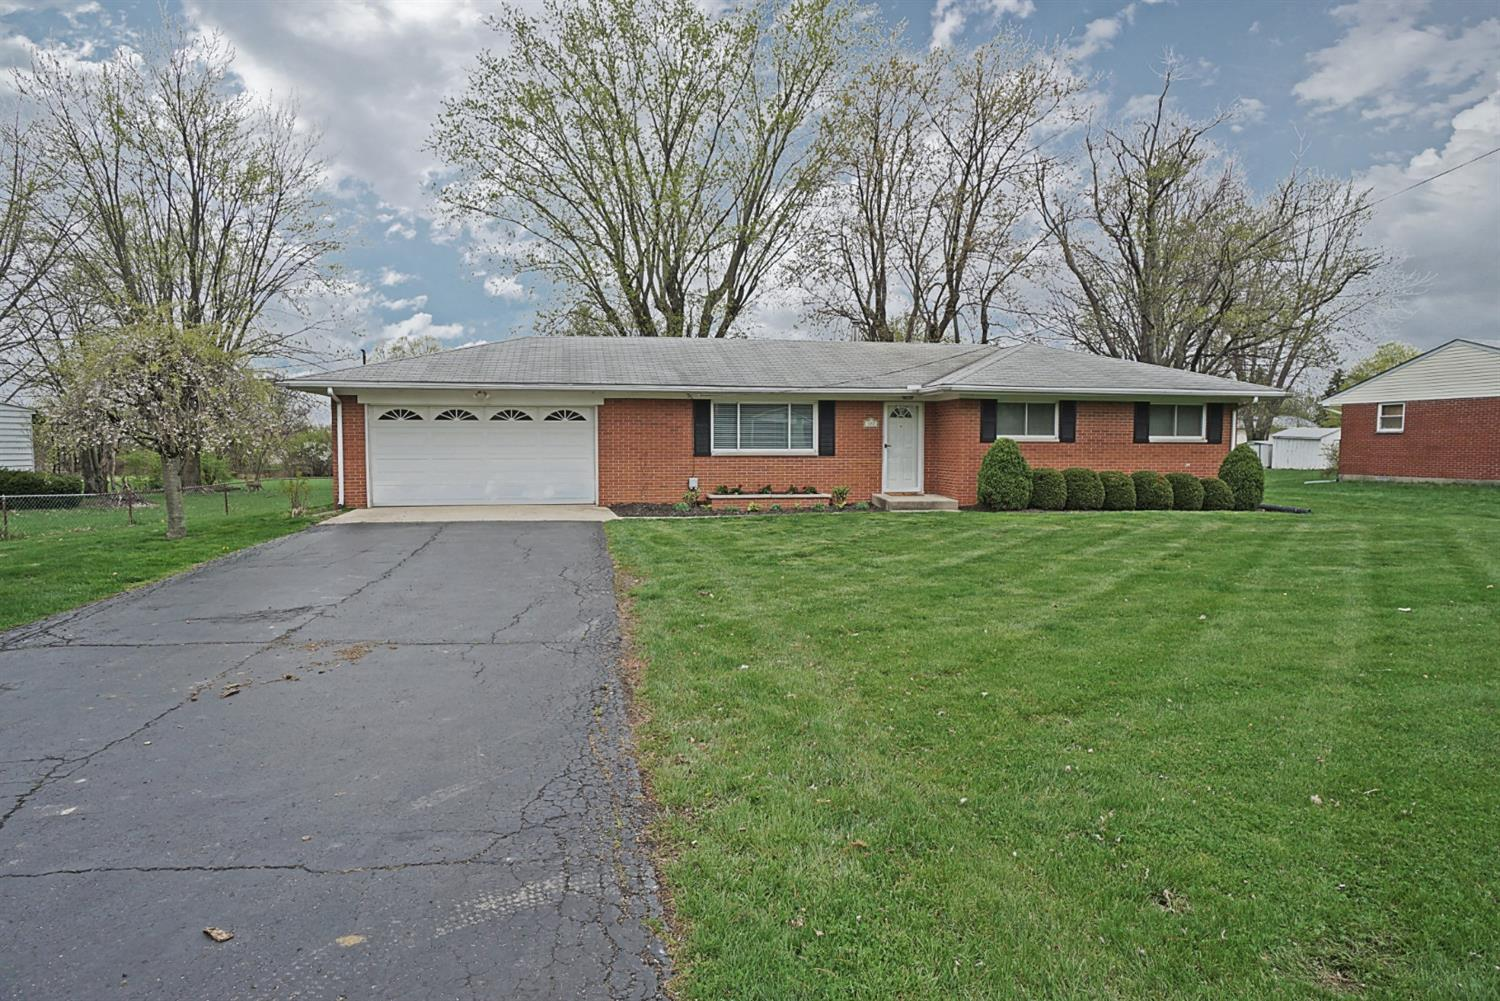 Property for sale at 322 Old 122, Clearcreek Twp.,  Ohio 45036